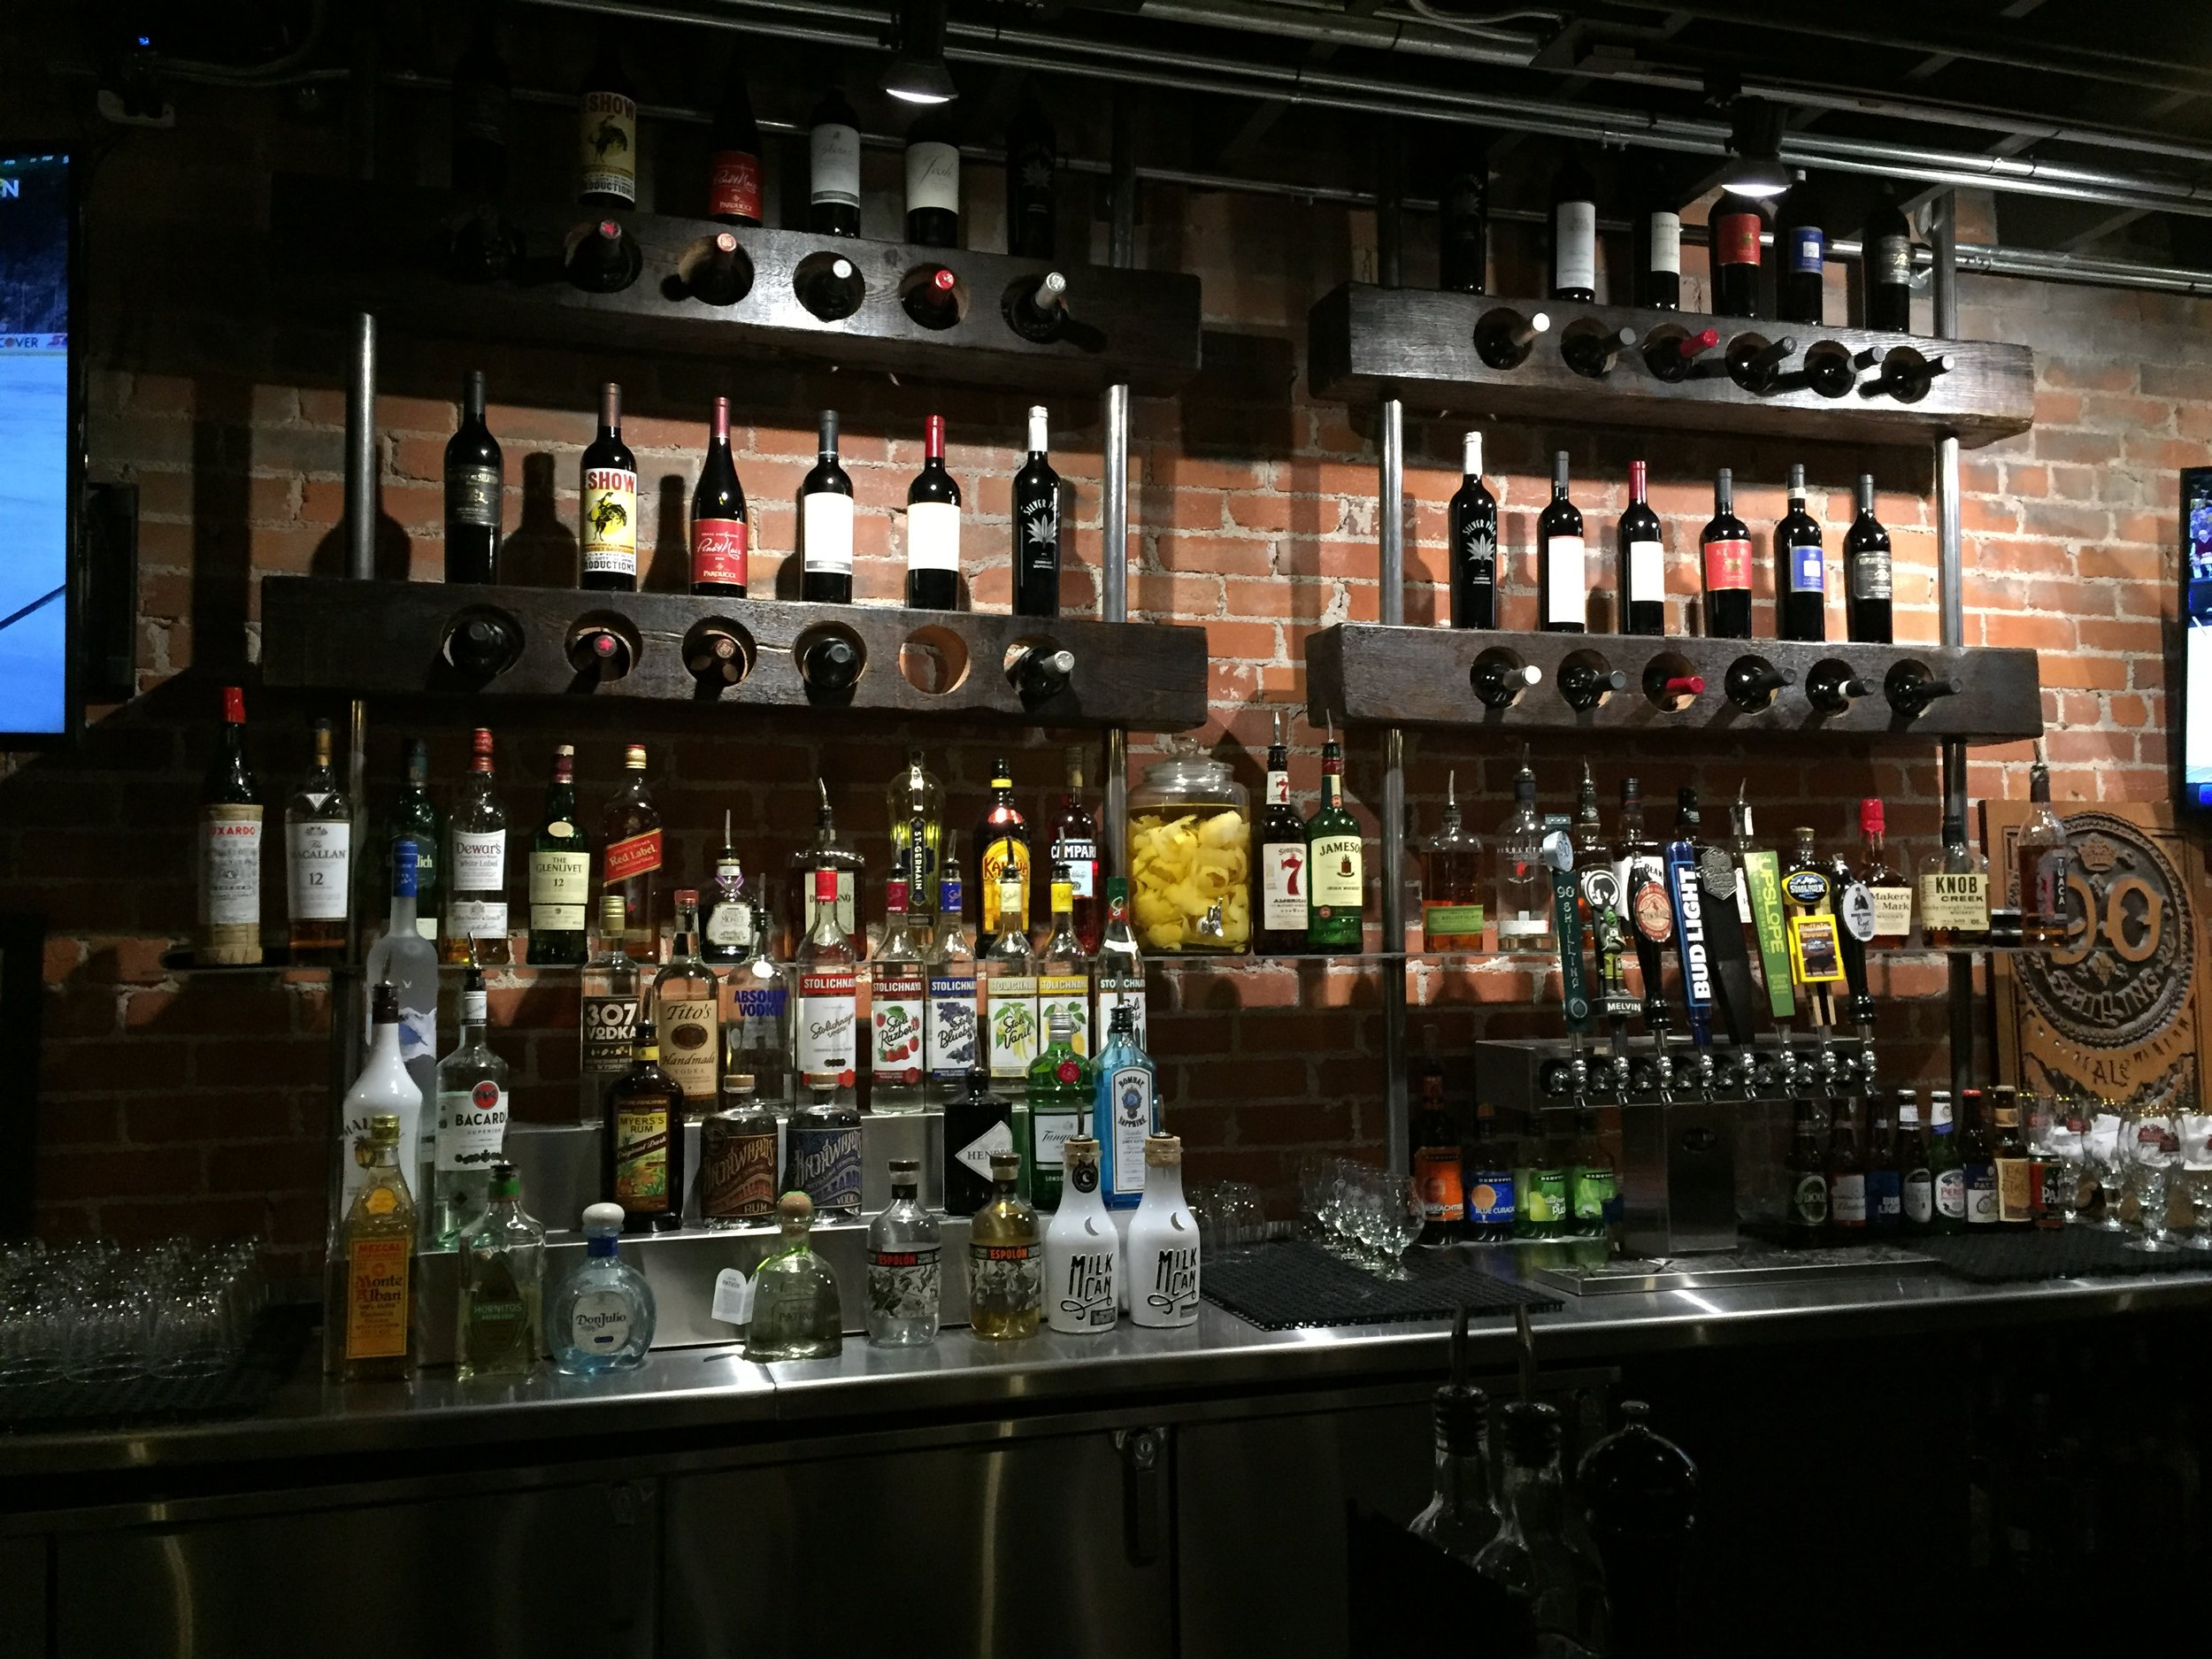 Full bar, featuring local brewery's and distillers.